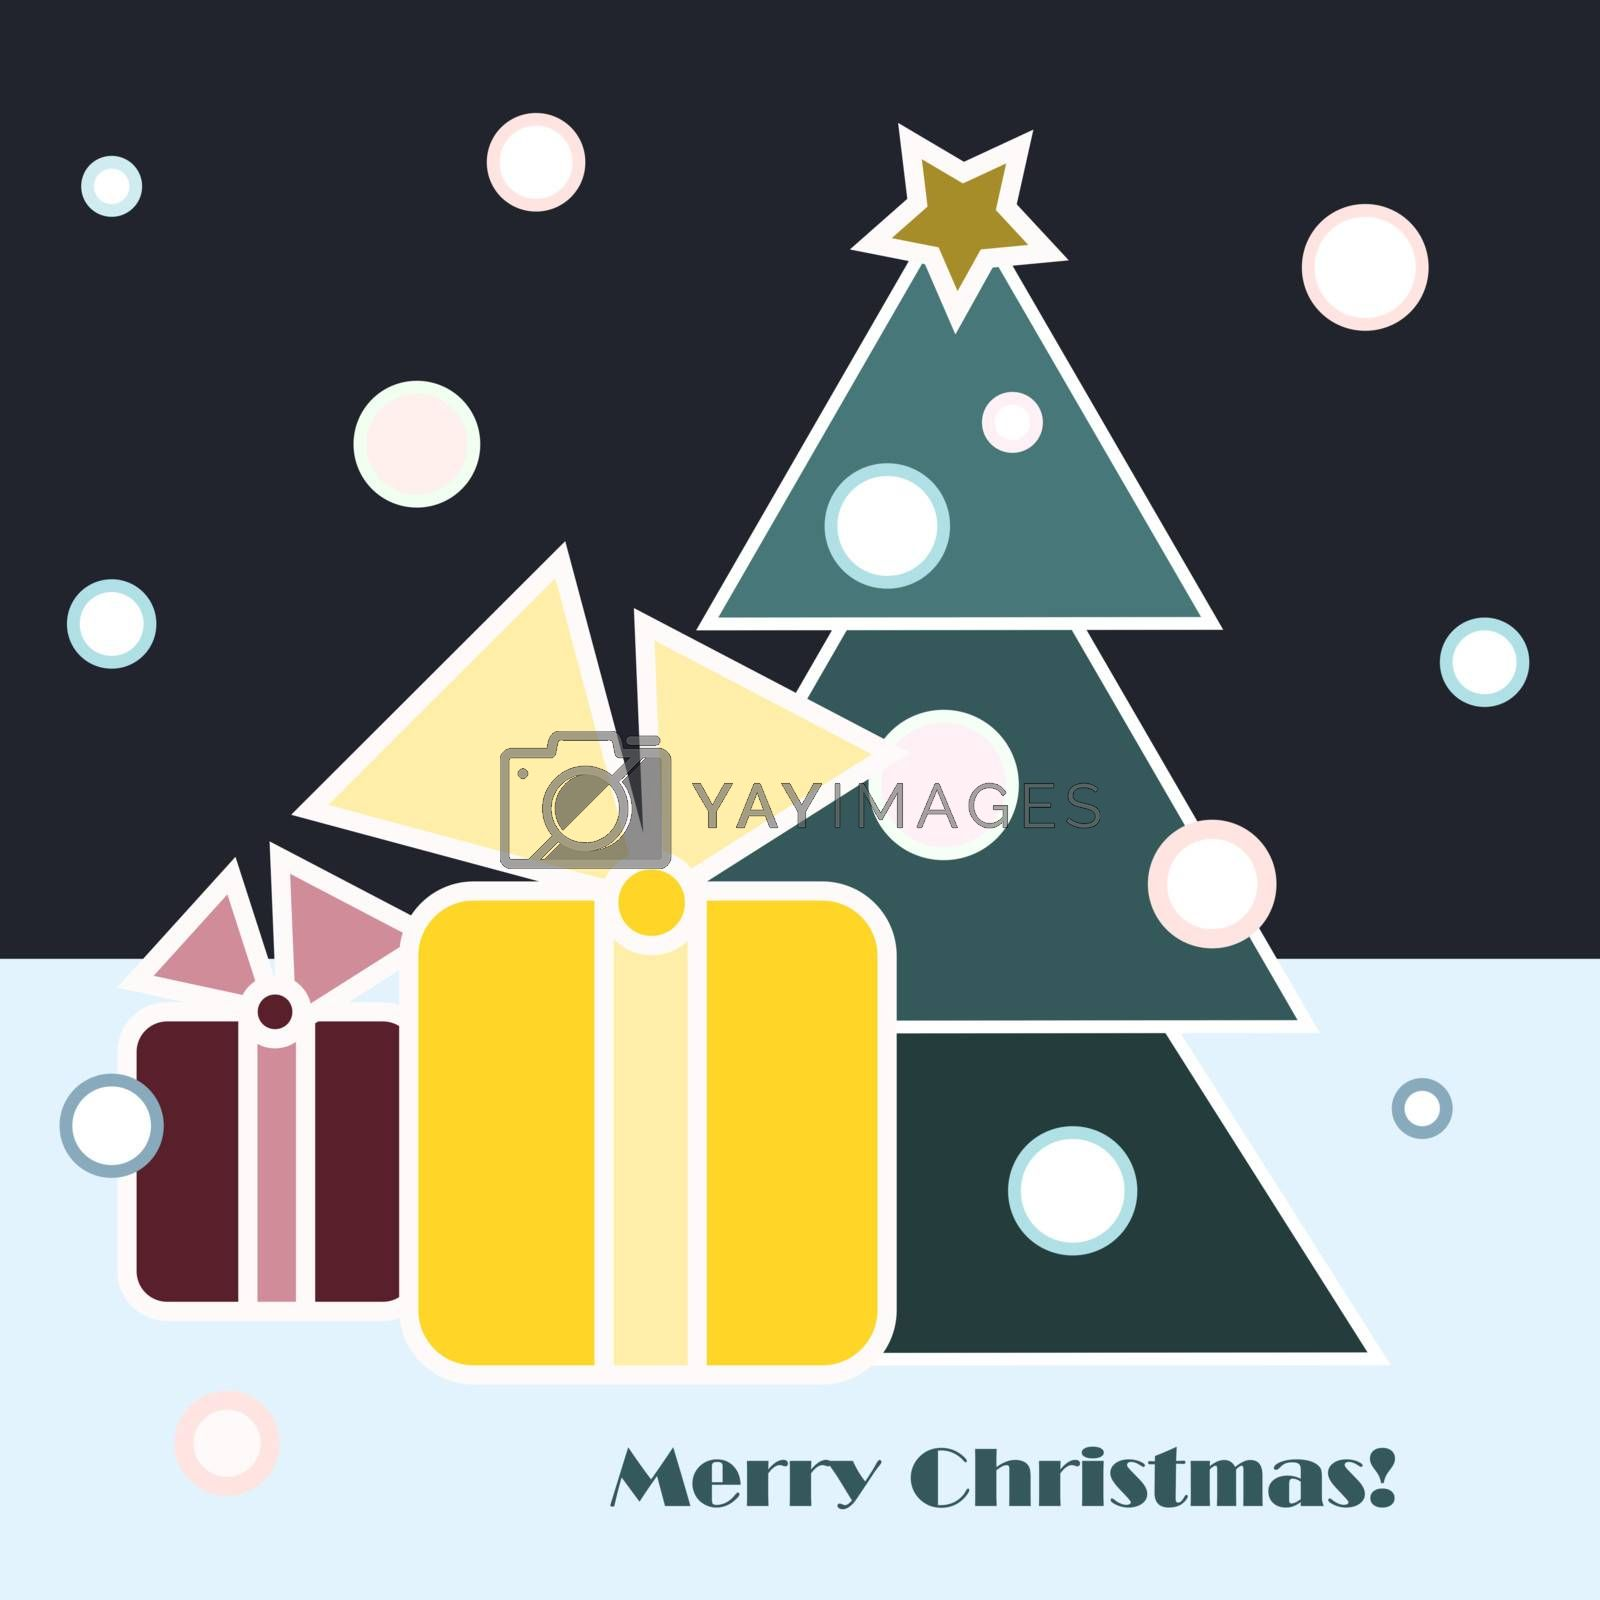 Christmas gifts and Christmas tree on dark sky and blue snow background